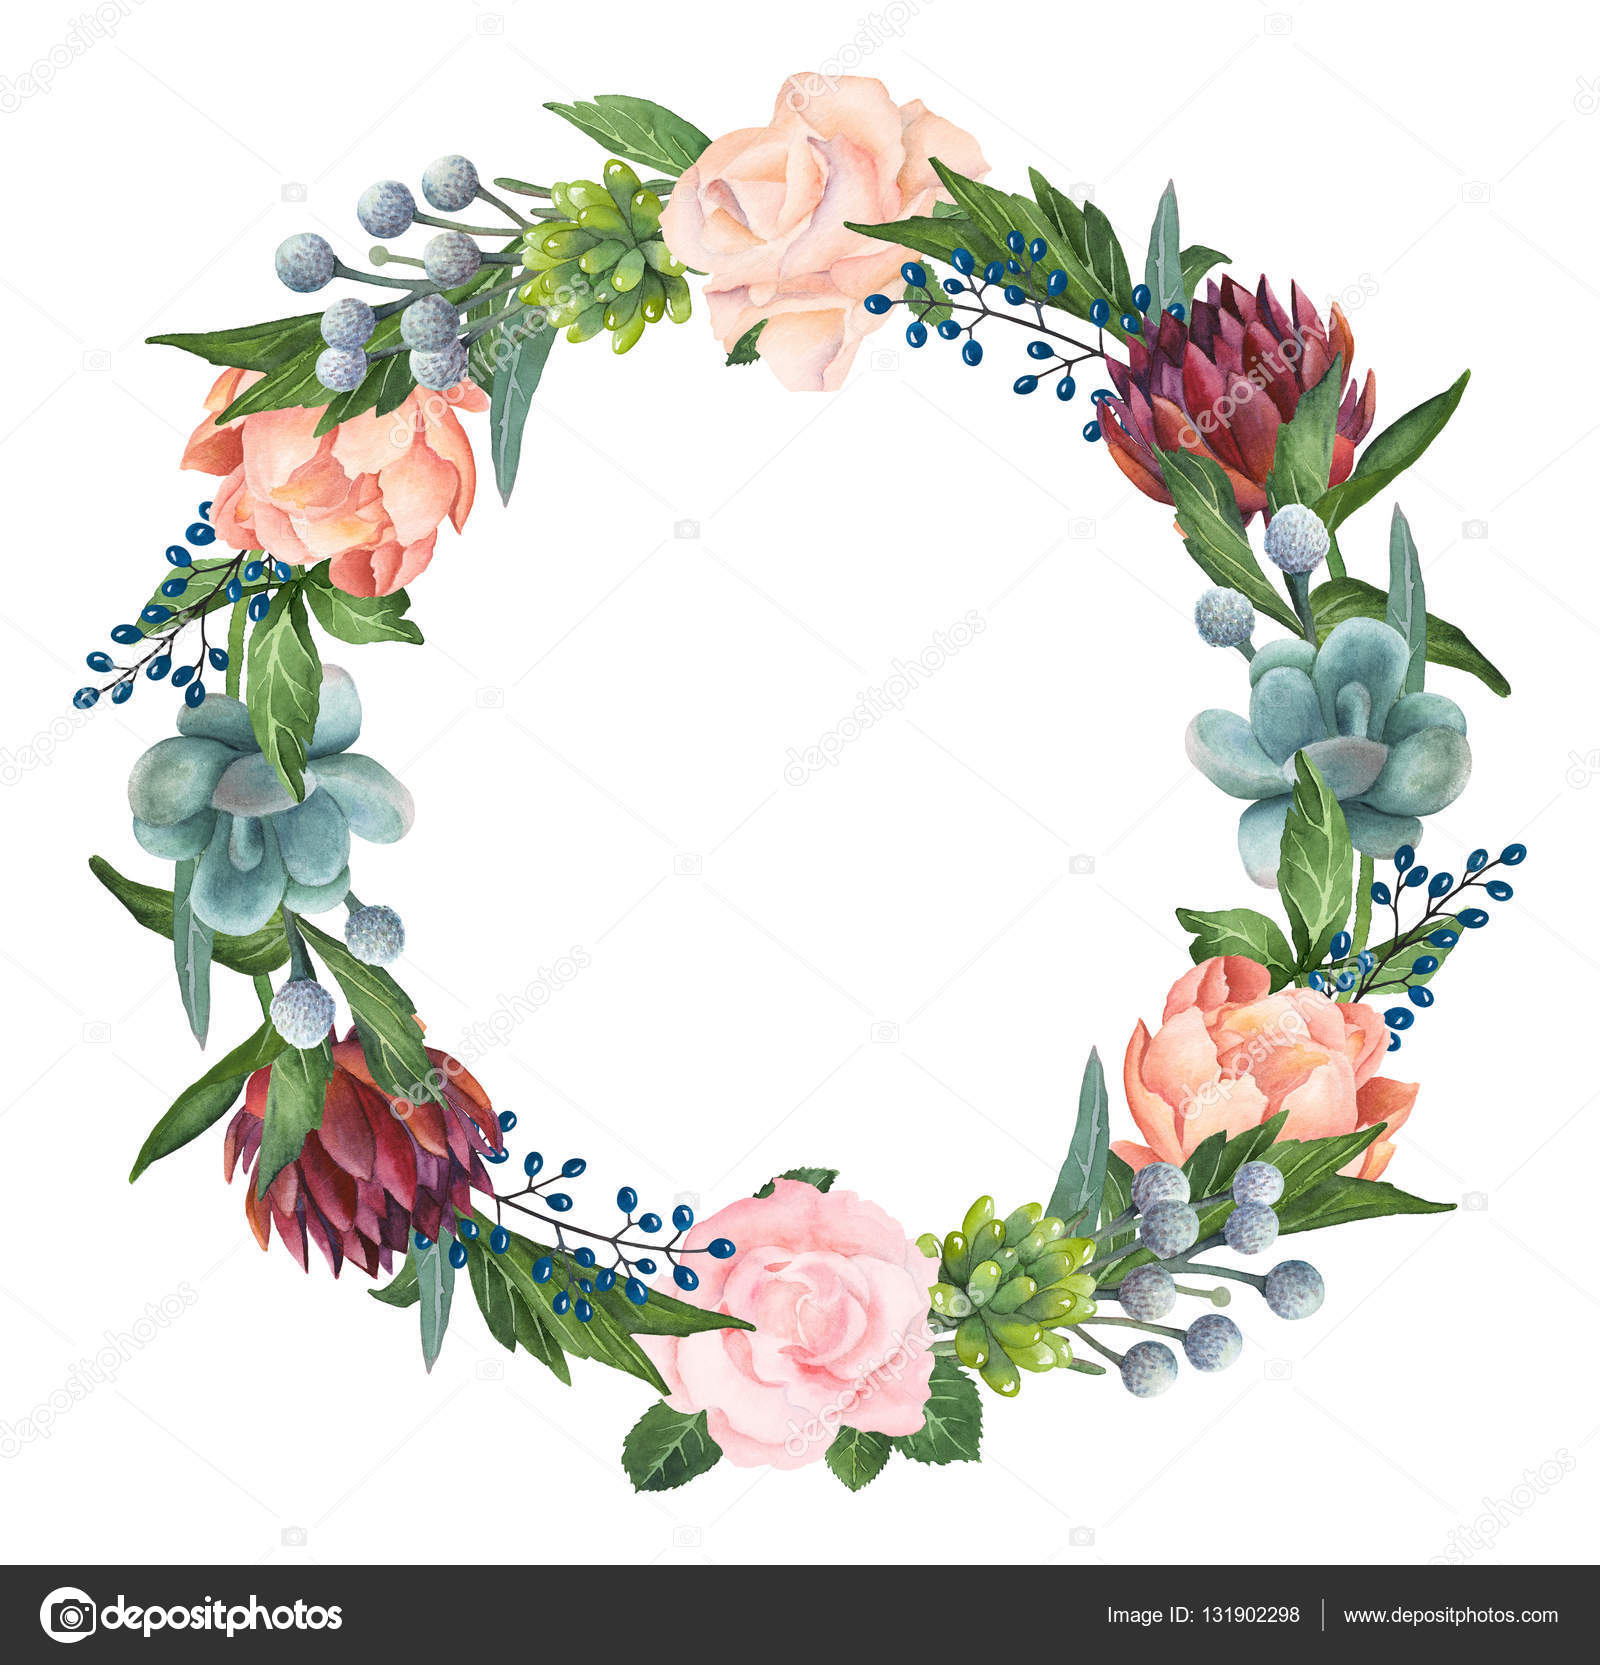 Hand-painted Watercolor Roses, Succulents And Peonies Wreath u2014 Stock Photo u00a9 kotulska #131902298